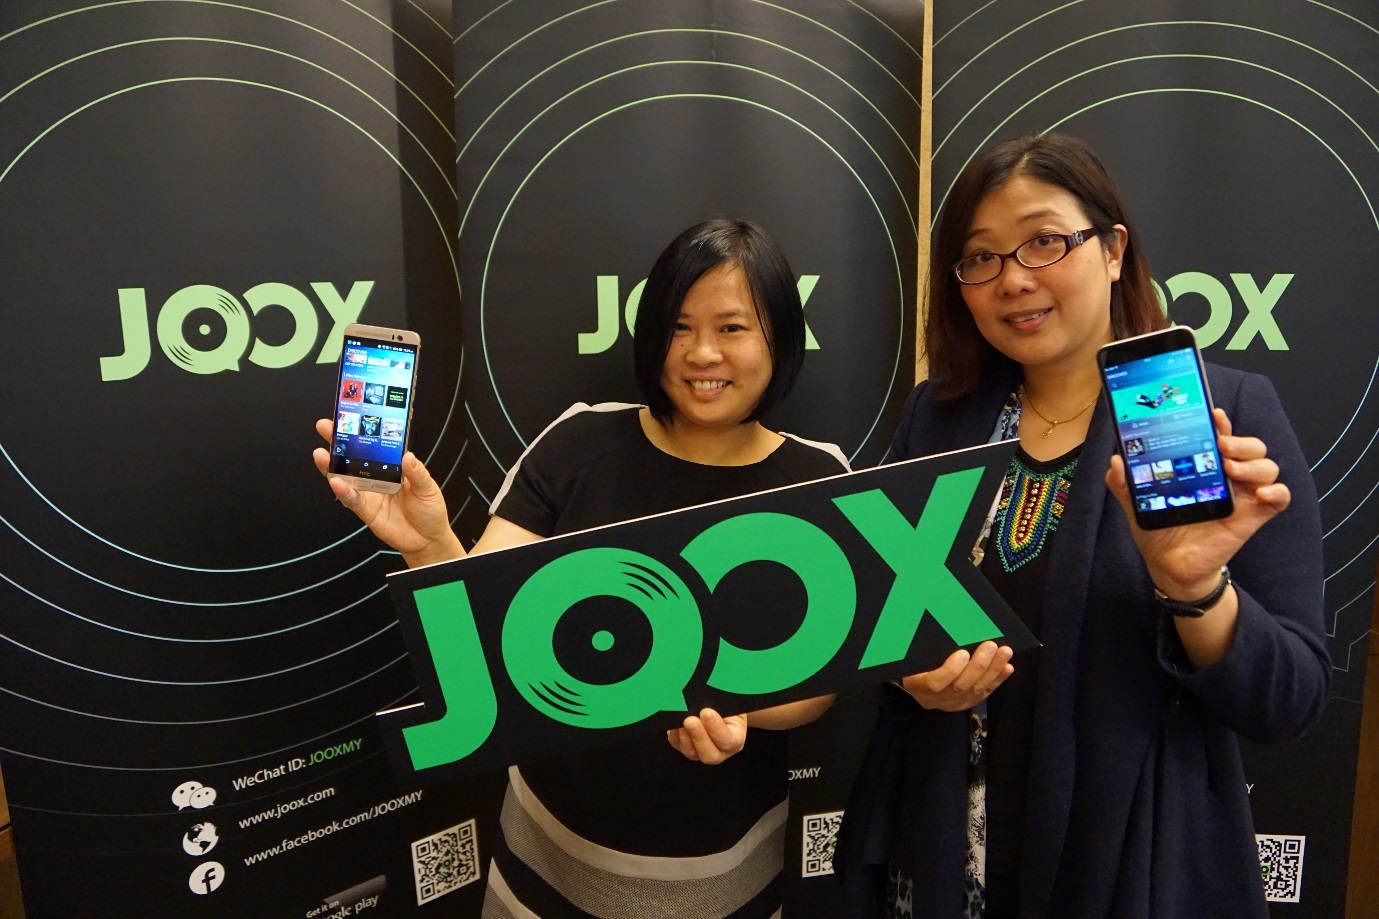 JOOX – a new music streaming service available in Malaysia